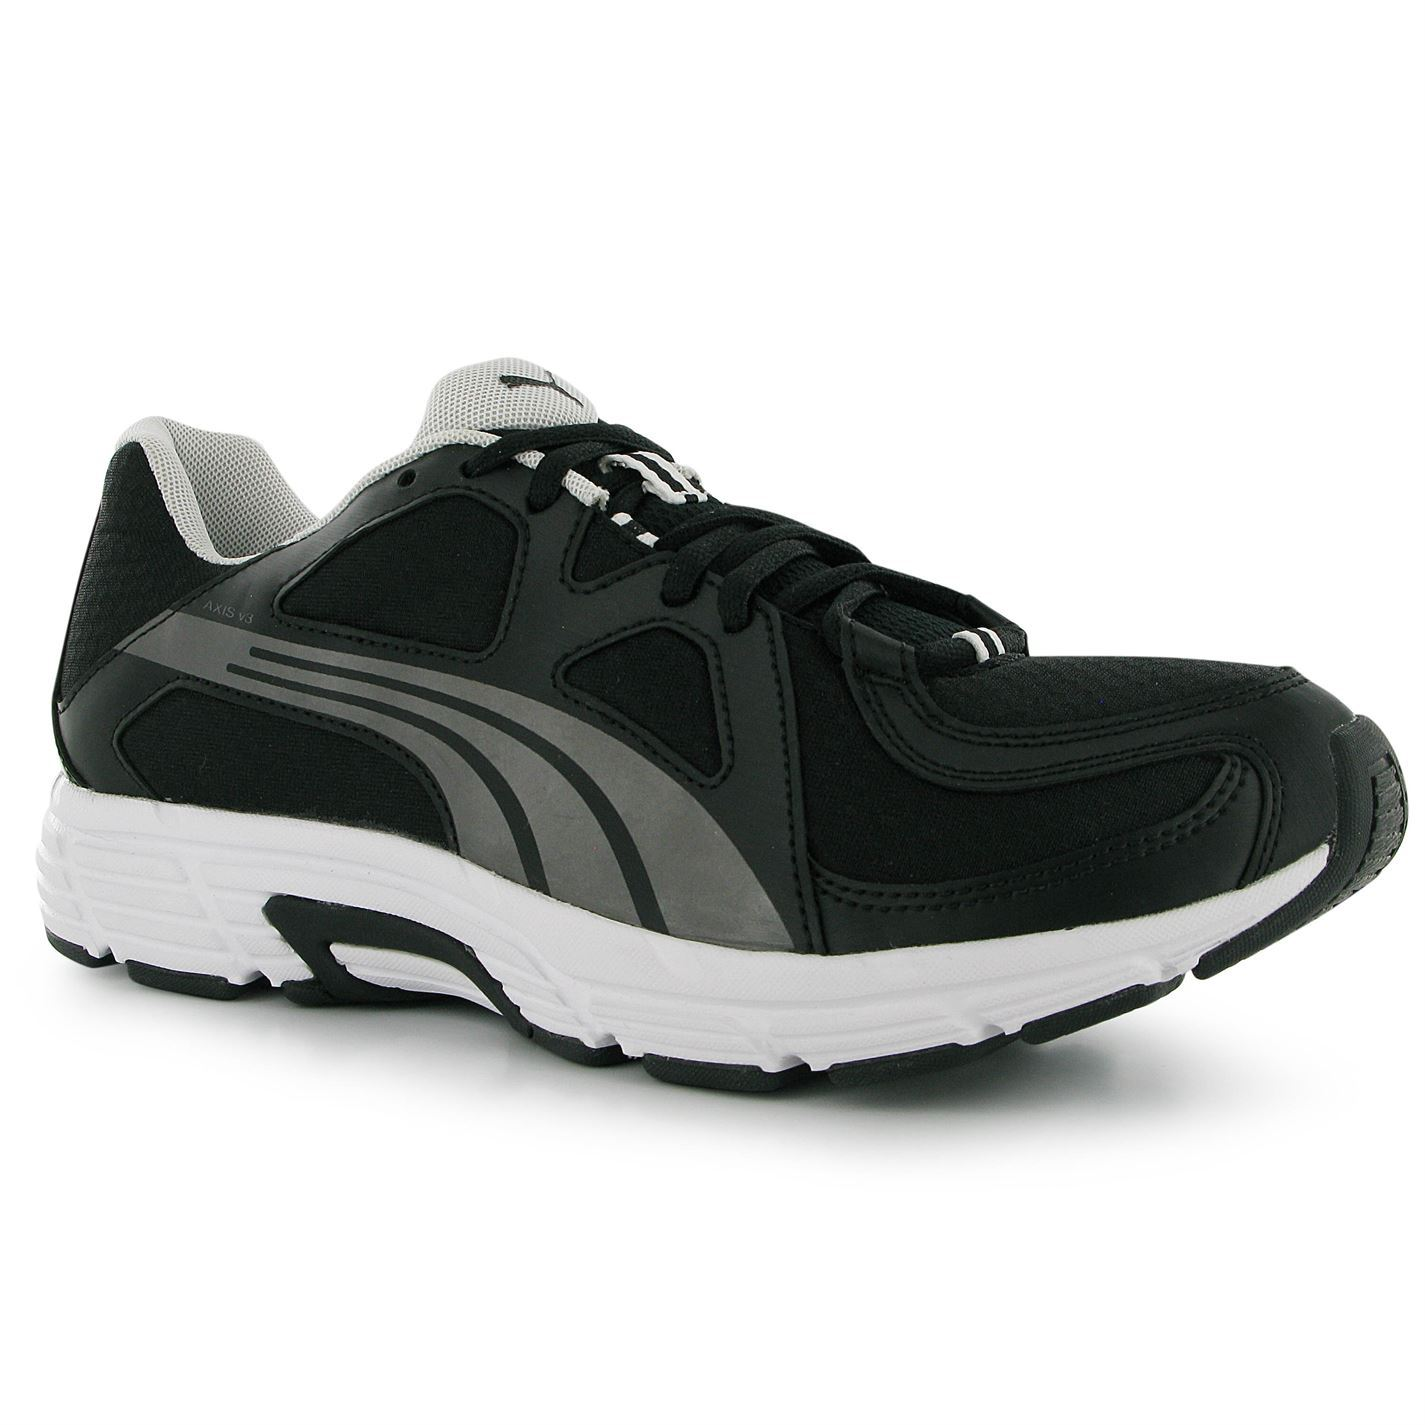 check out d8836 69f4a ... Puma Axis v3 Mens Running chaussures formateurs Black Silver Sneakers  chaussures de sport ...